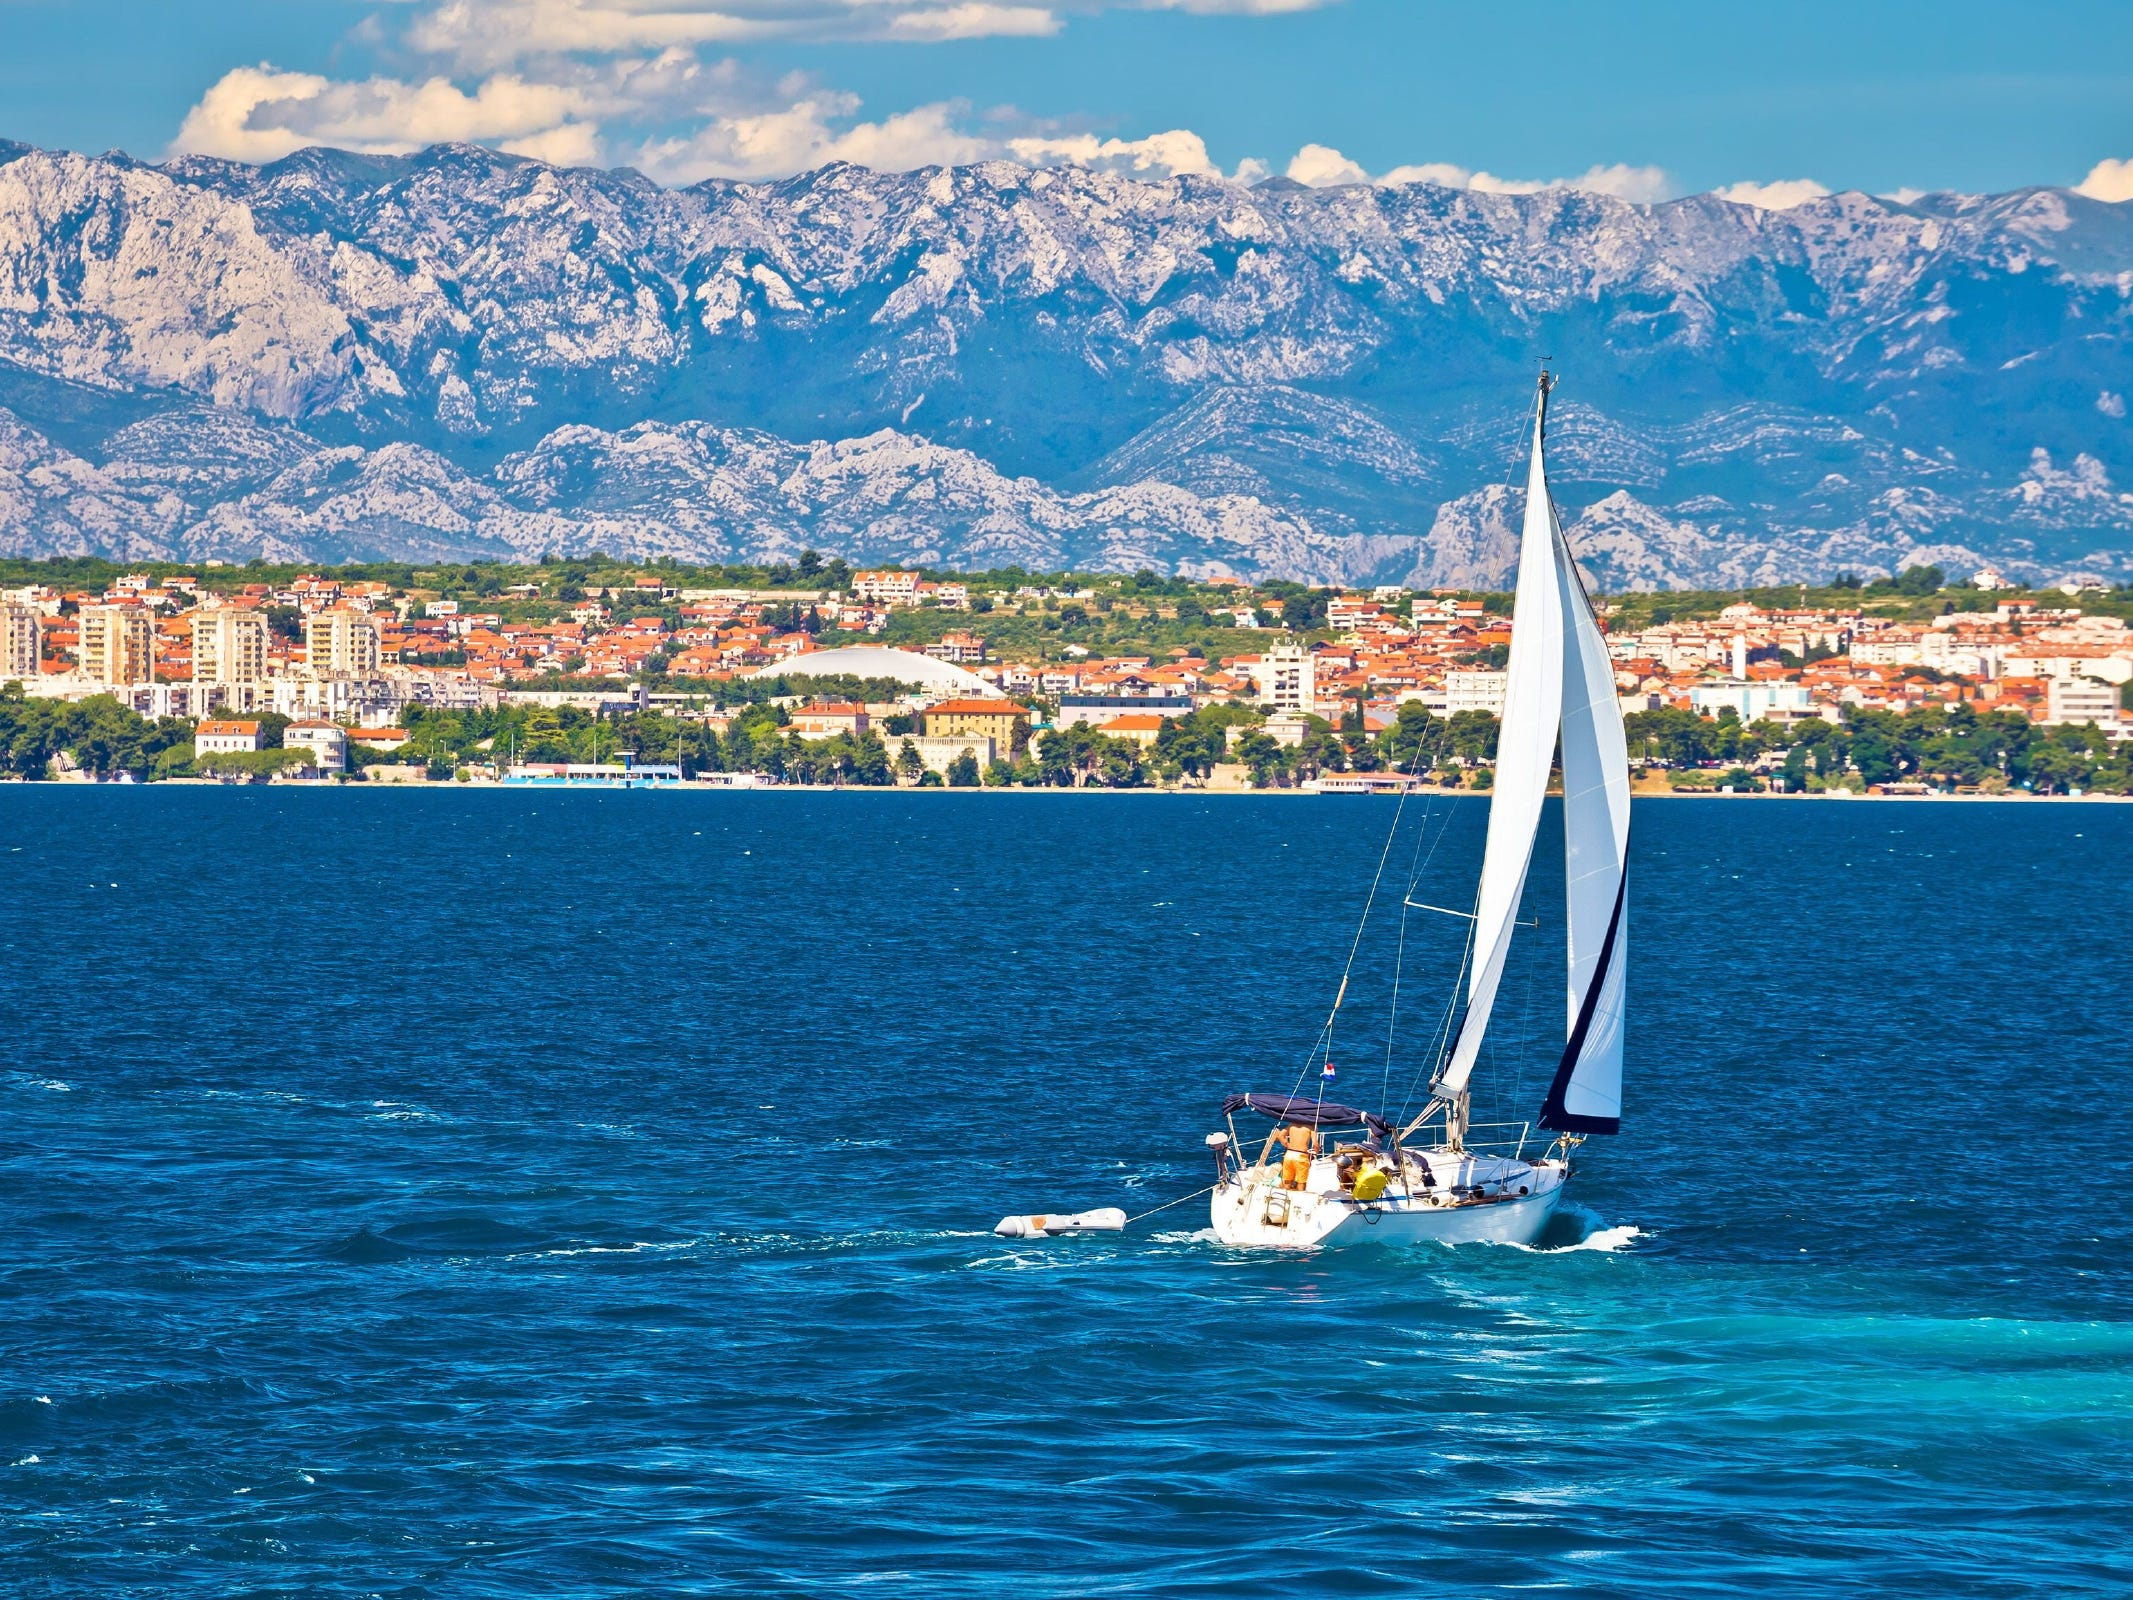 No. 9 on the list of top 10 cities to visit in 2019 is Zadar, Croatia. A compact Croatian idyll with attitude, Zadar has made its comeback with innovative urban spaces that celebrate local culture.